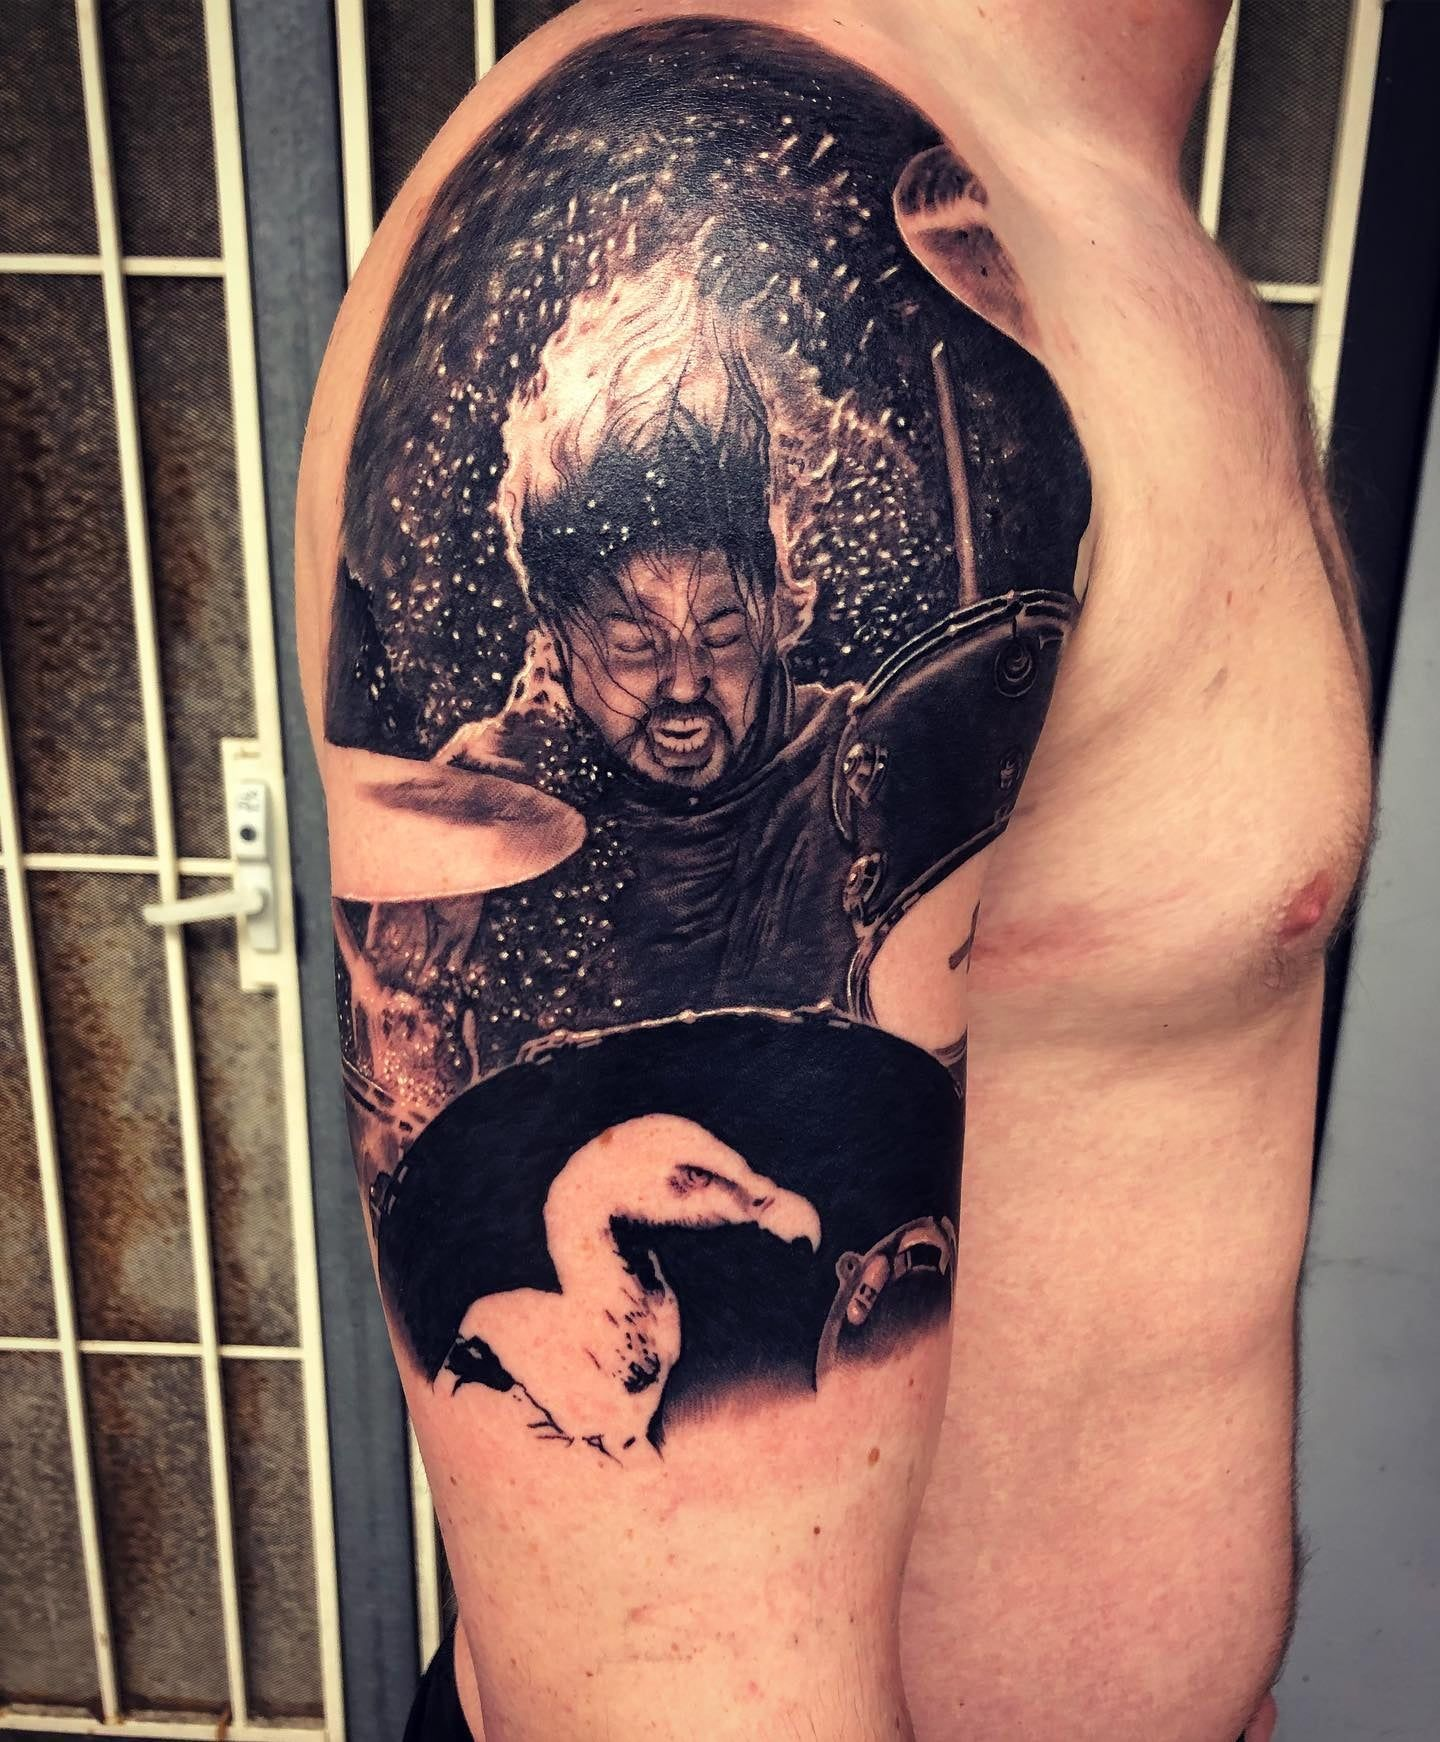 Dave Grohl Tattoo Best Tattoo Dave Grohl Tattoo Dave Grohl Tattoos